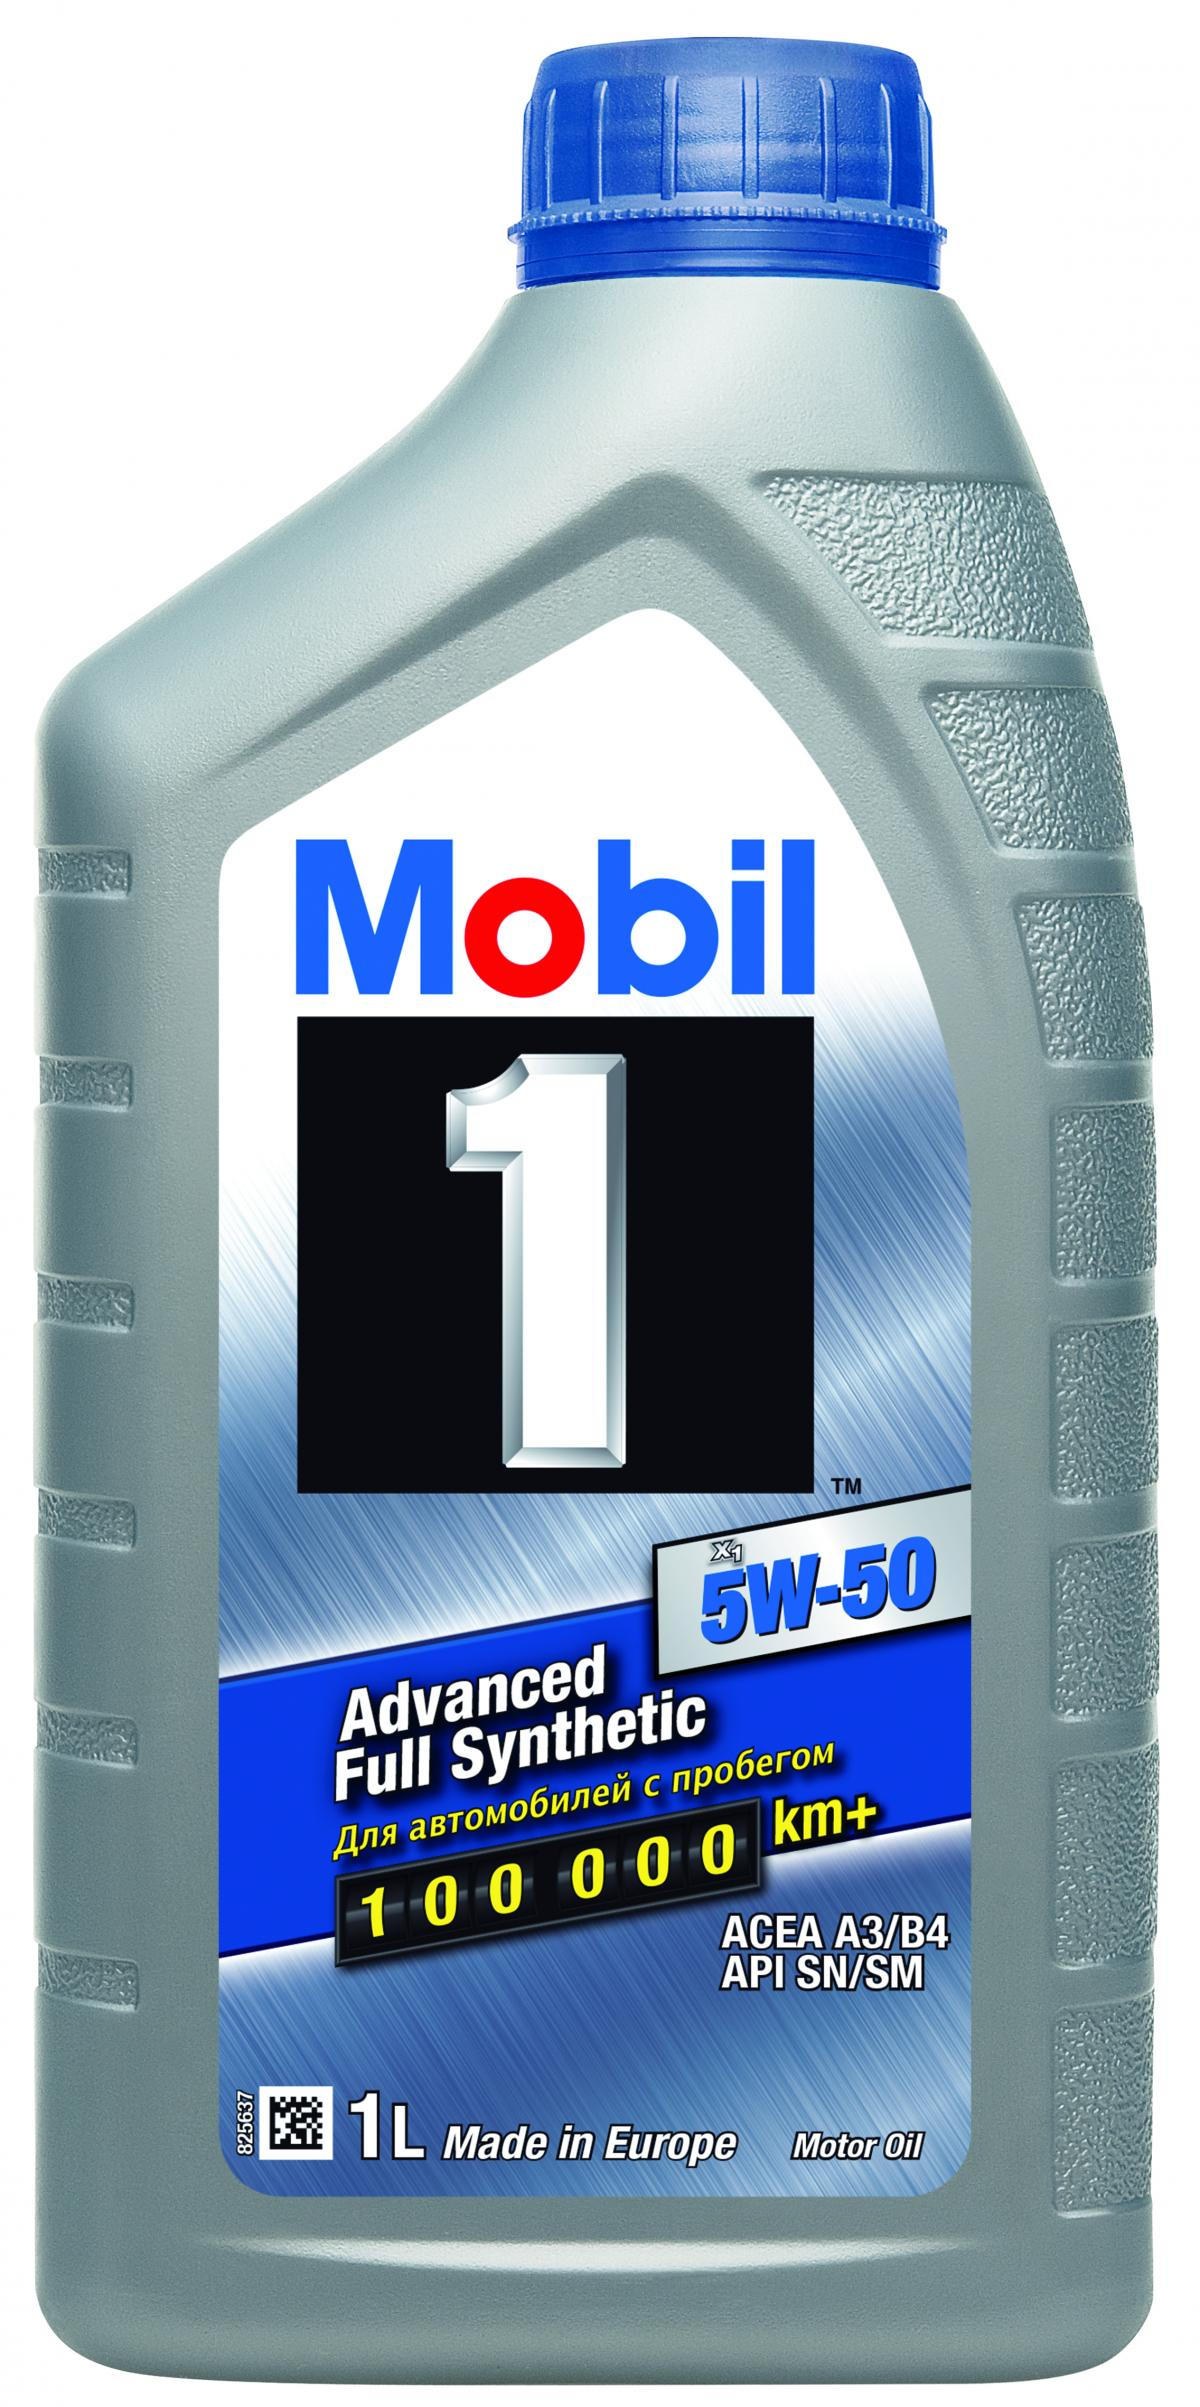 Масло моторн. Mobil 1™ FS x1 5W-50  (Канистра 1л) MOBIL 4112472602